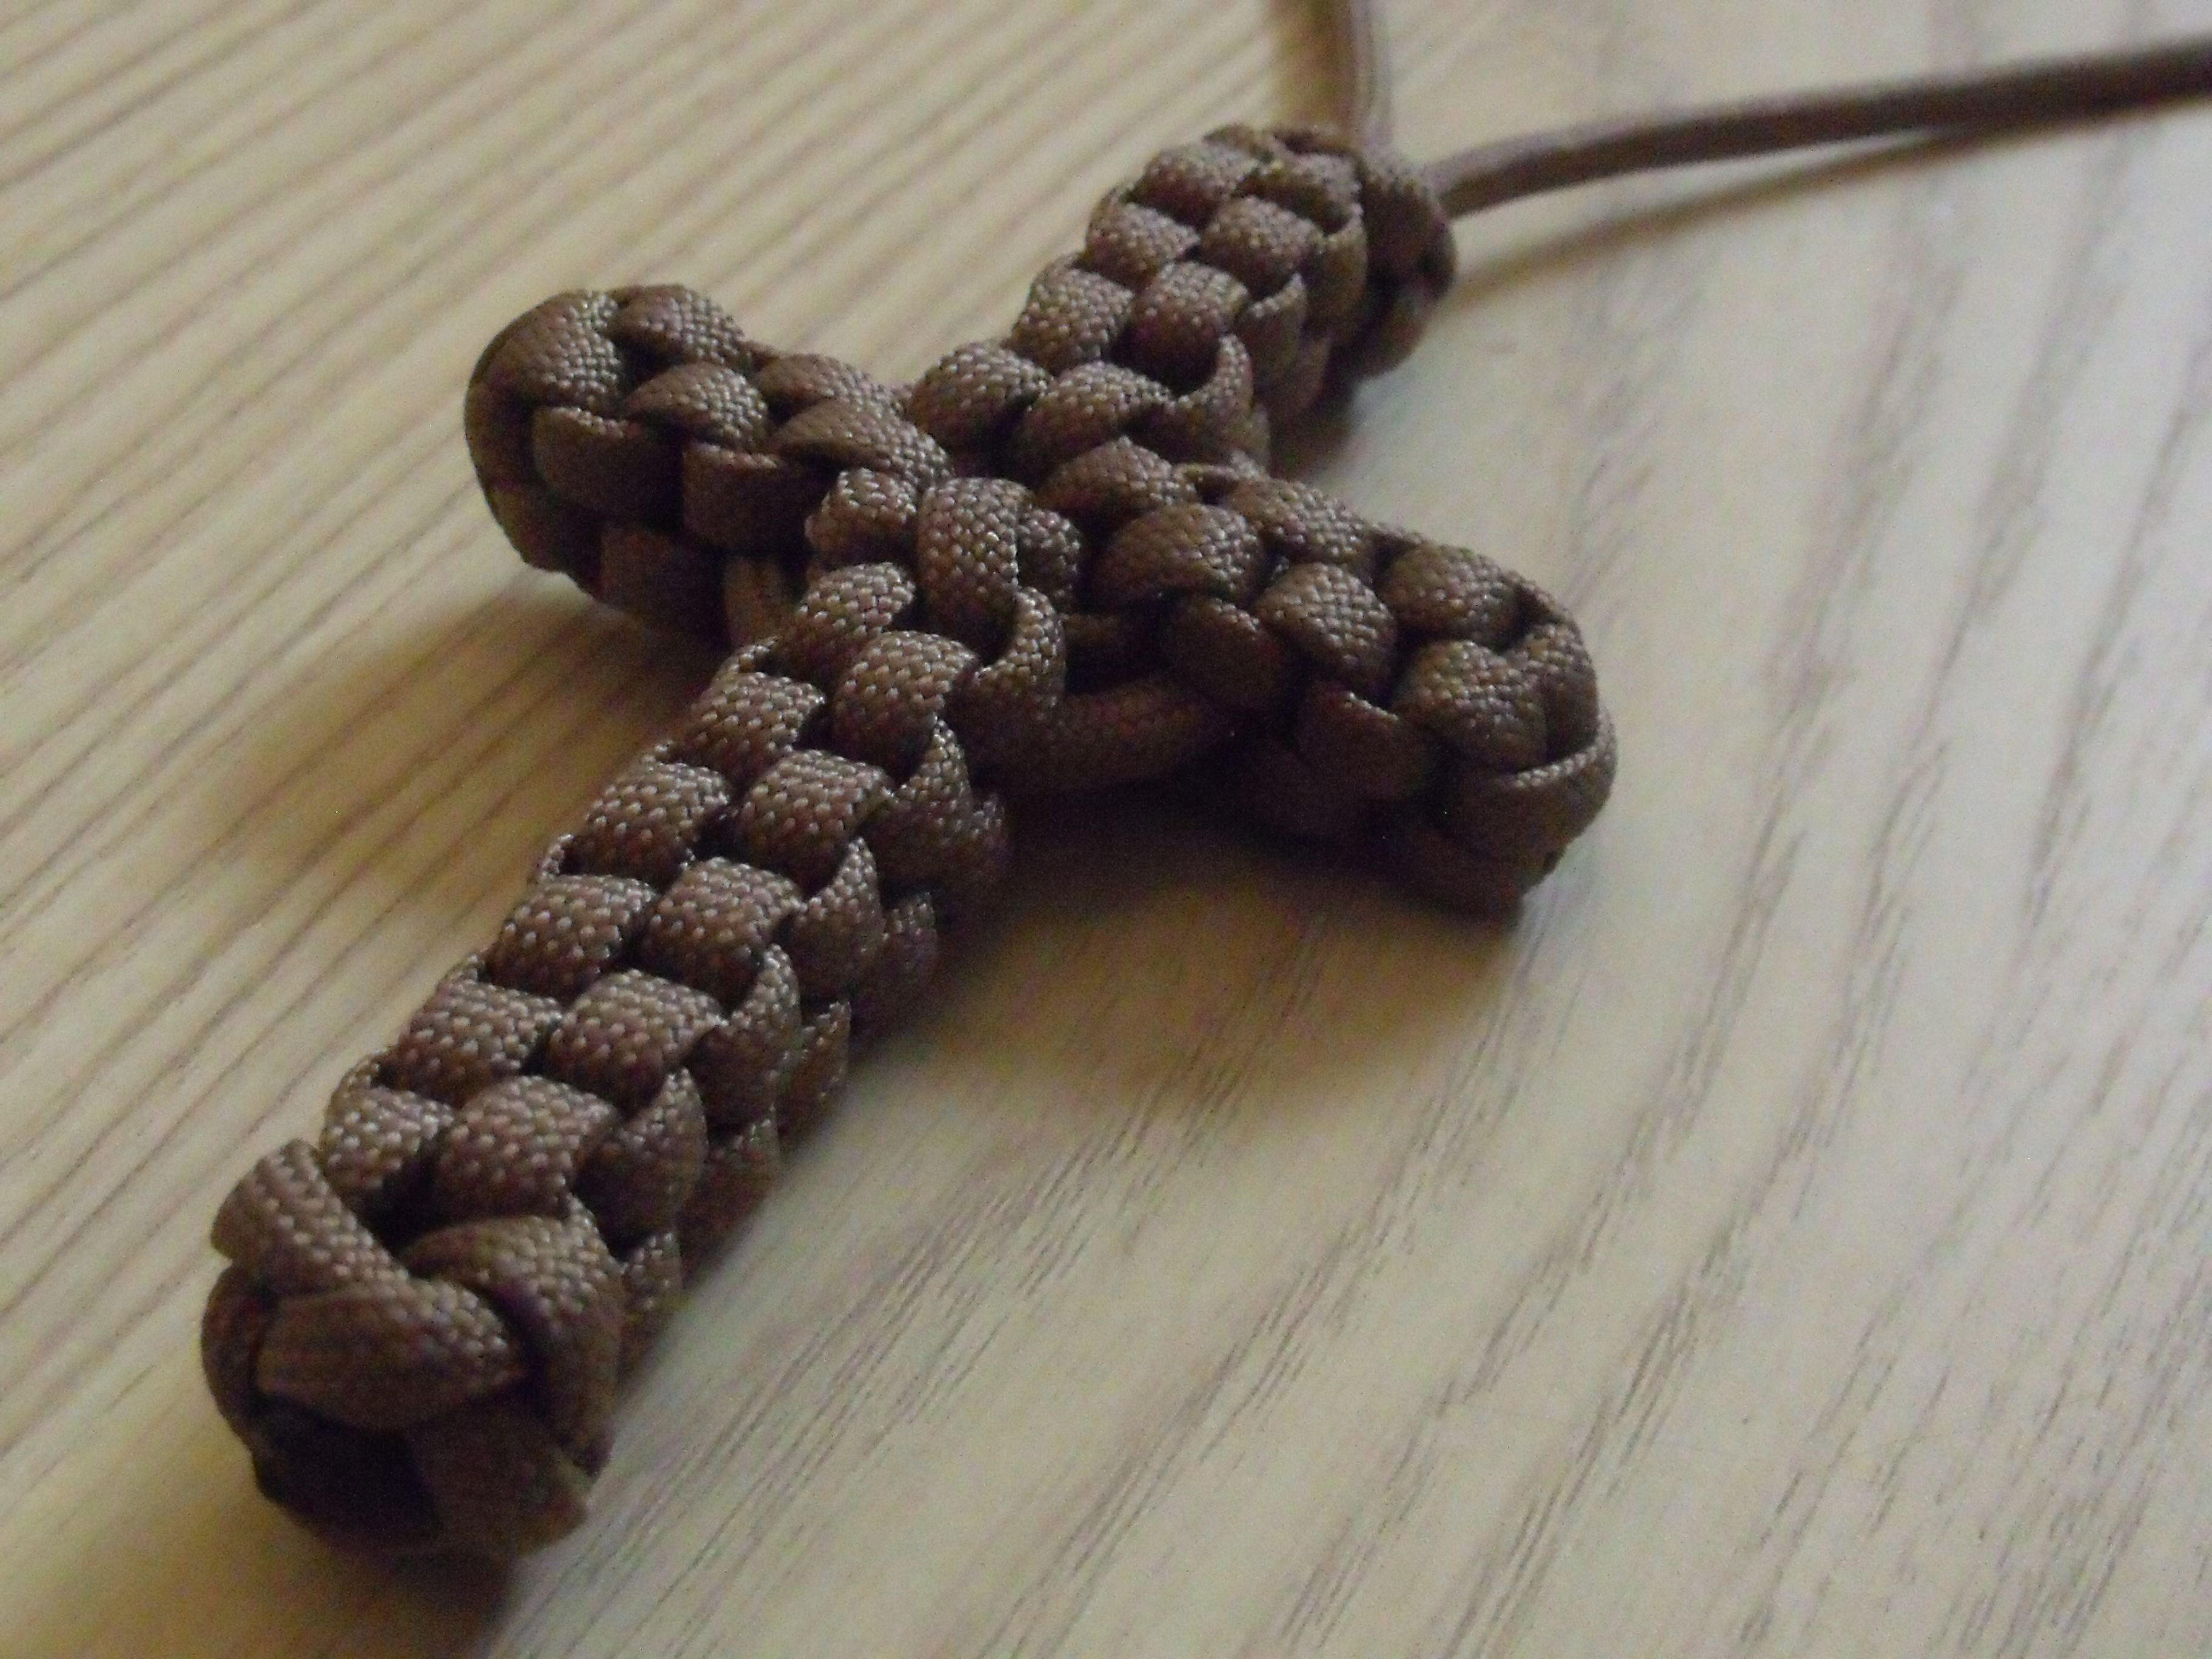 Knotted paracord cross jewelry making projects for How to make a paracord lanyard necklace